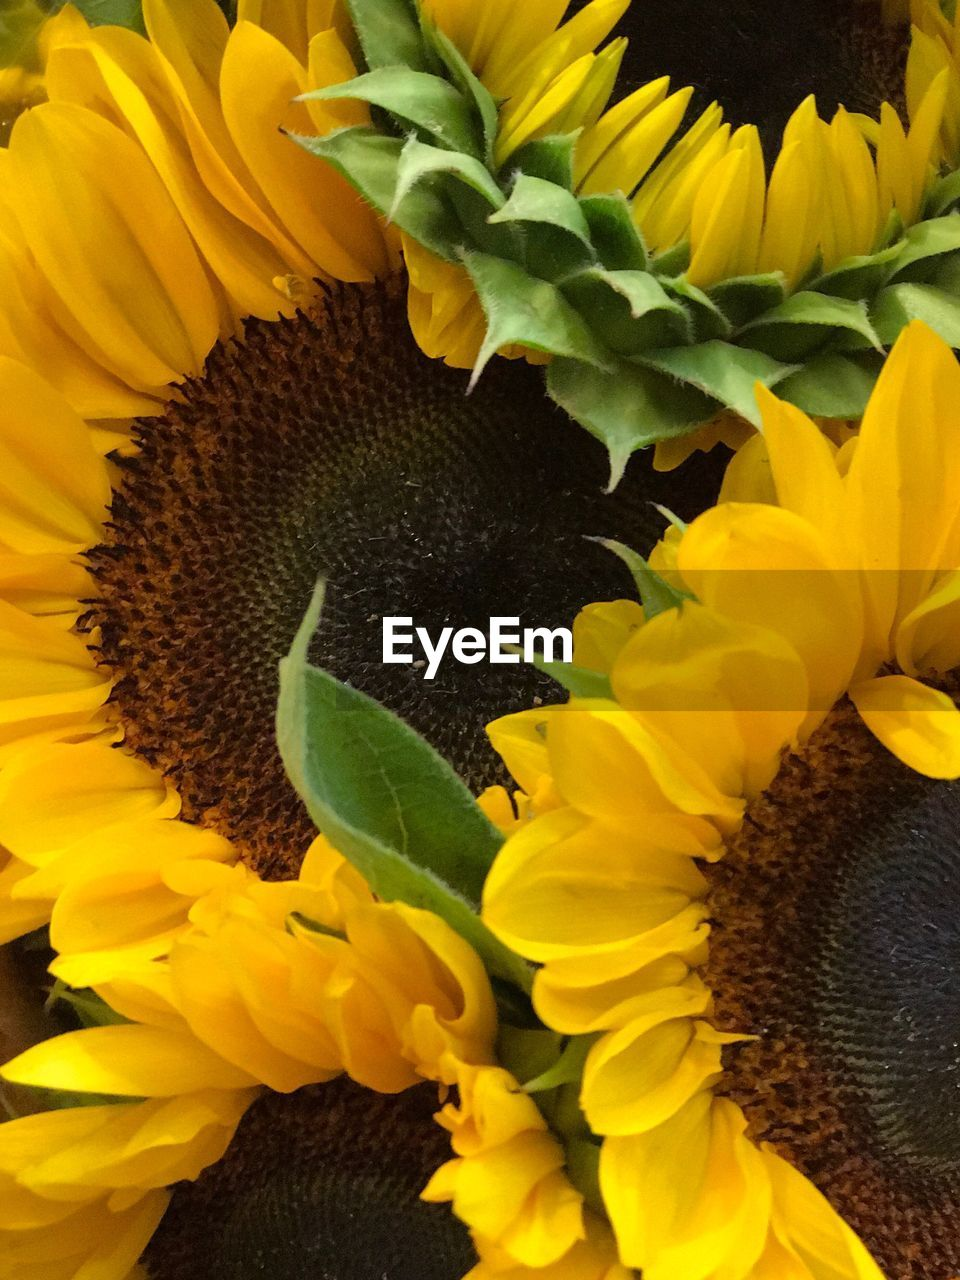 flower, yellow, petal, sunflower, fragility, beauty in nature, nature, flower head, freshness, growth, plant, no people, close-up, leaf, outdoors, blooming, day